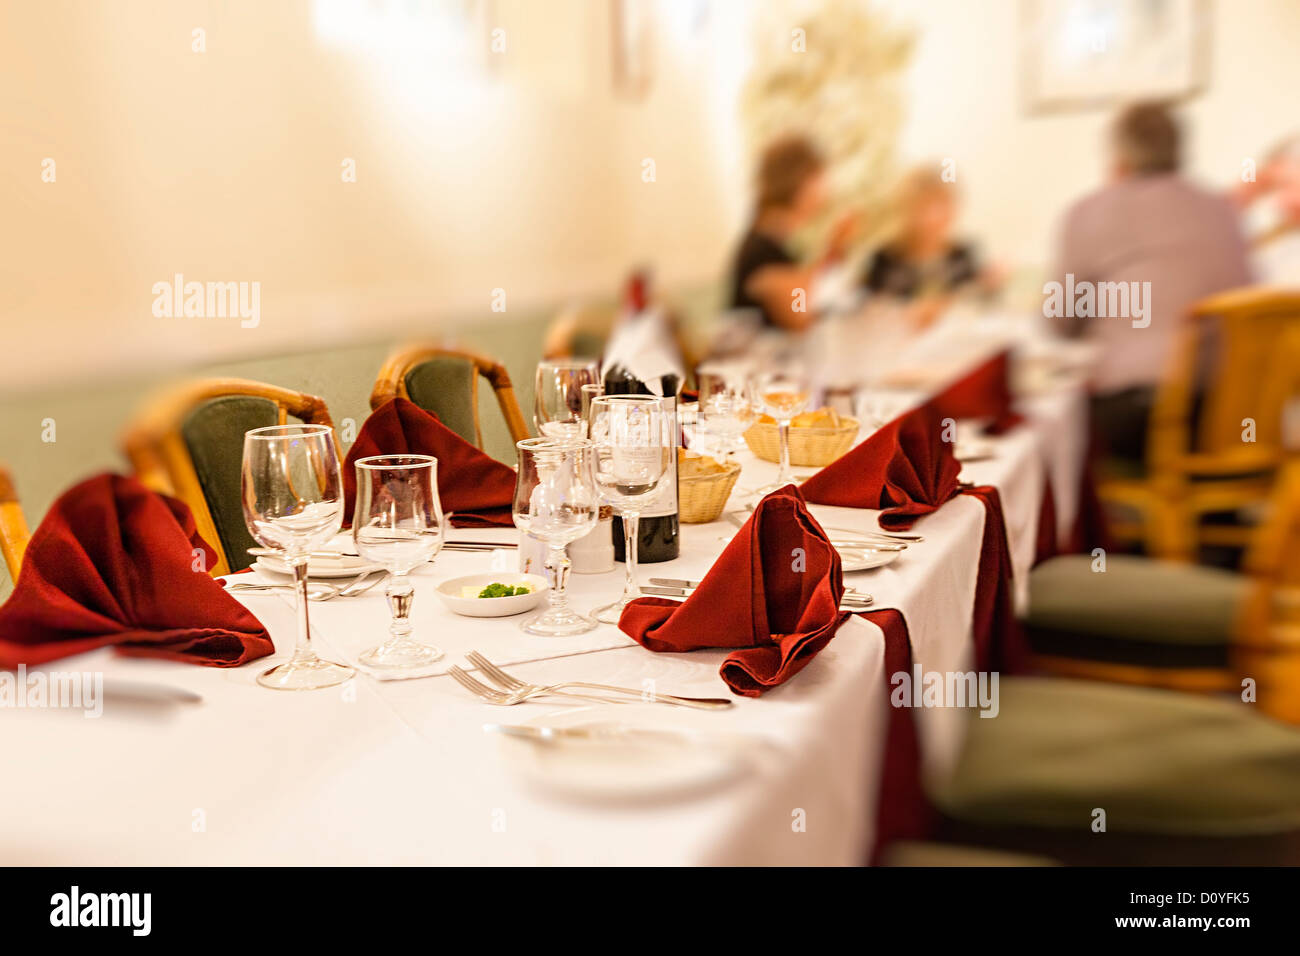 People in restaurant with focus on table with places laid ready, UK - Stock Image